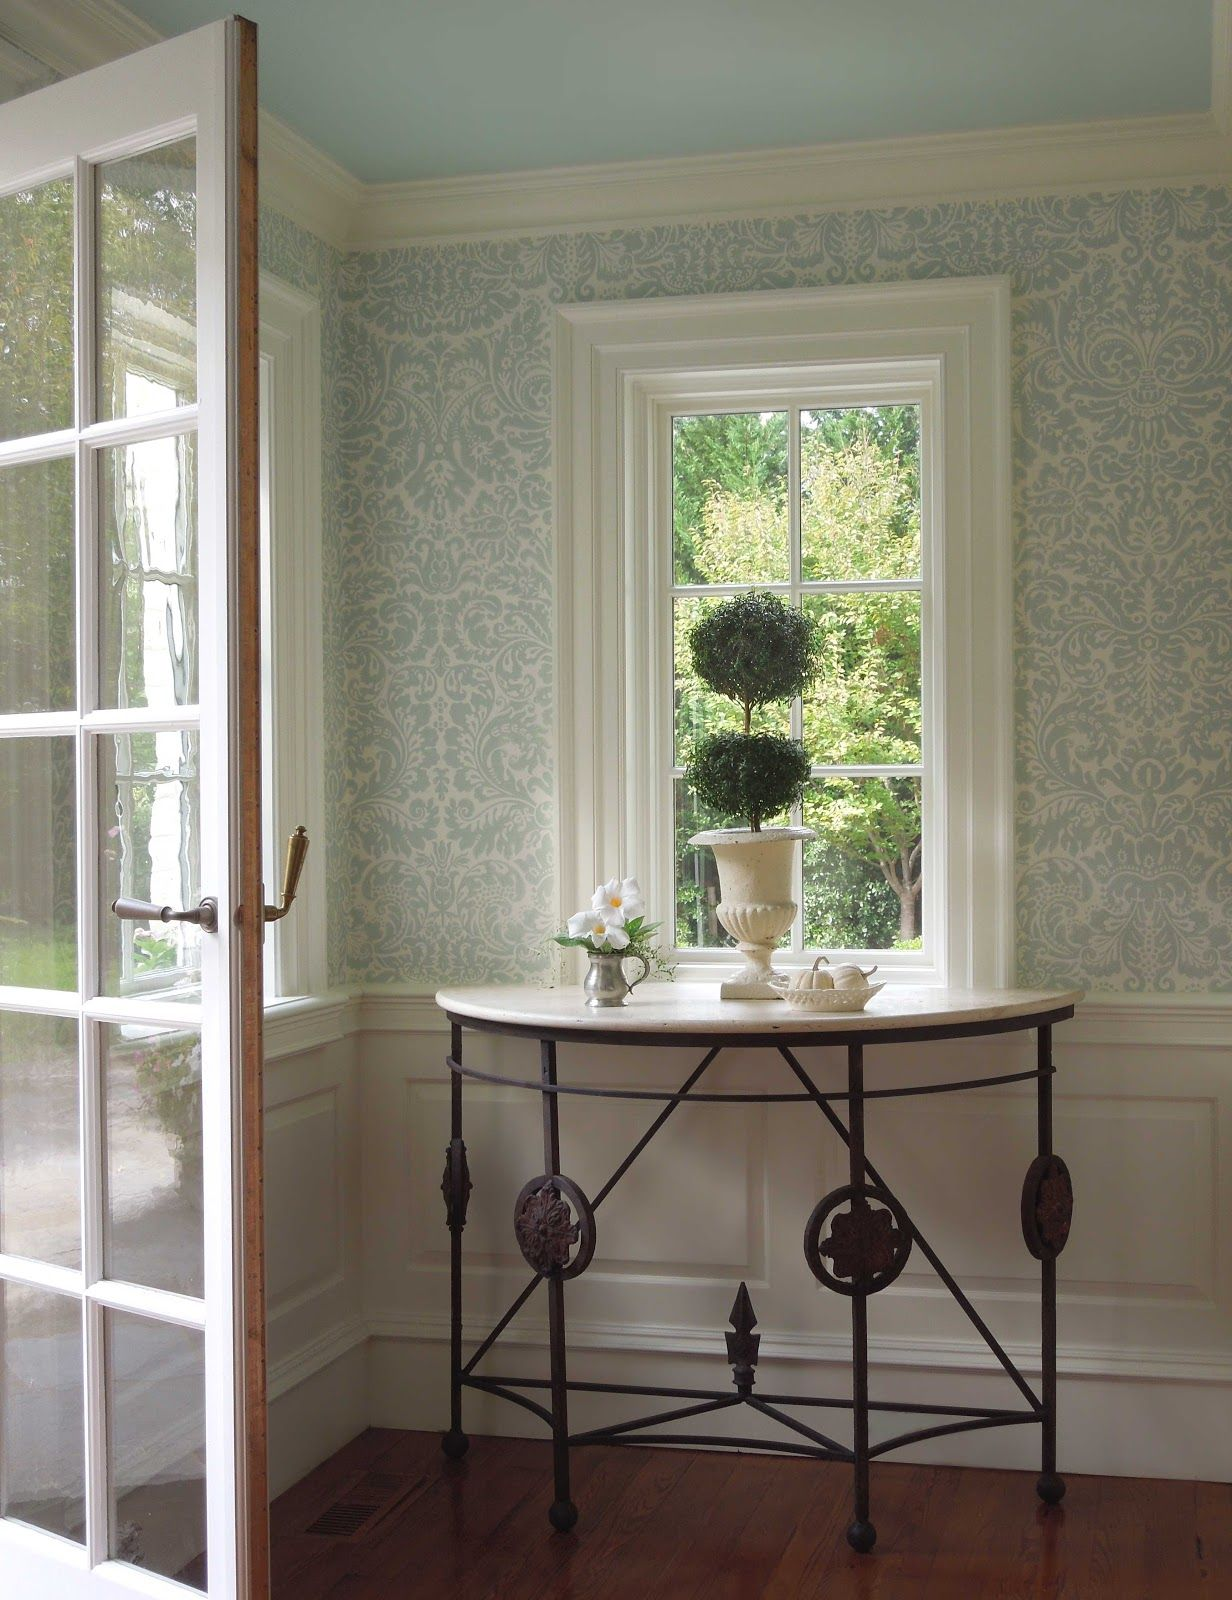 Neue raumwandgestaltung farrow and ball wallpaper need to look them up want one wall of